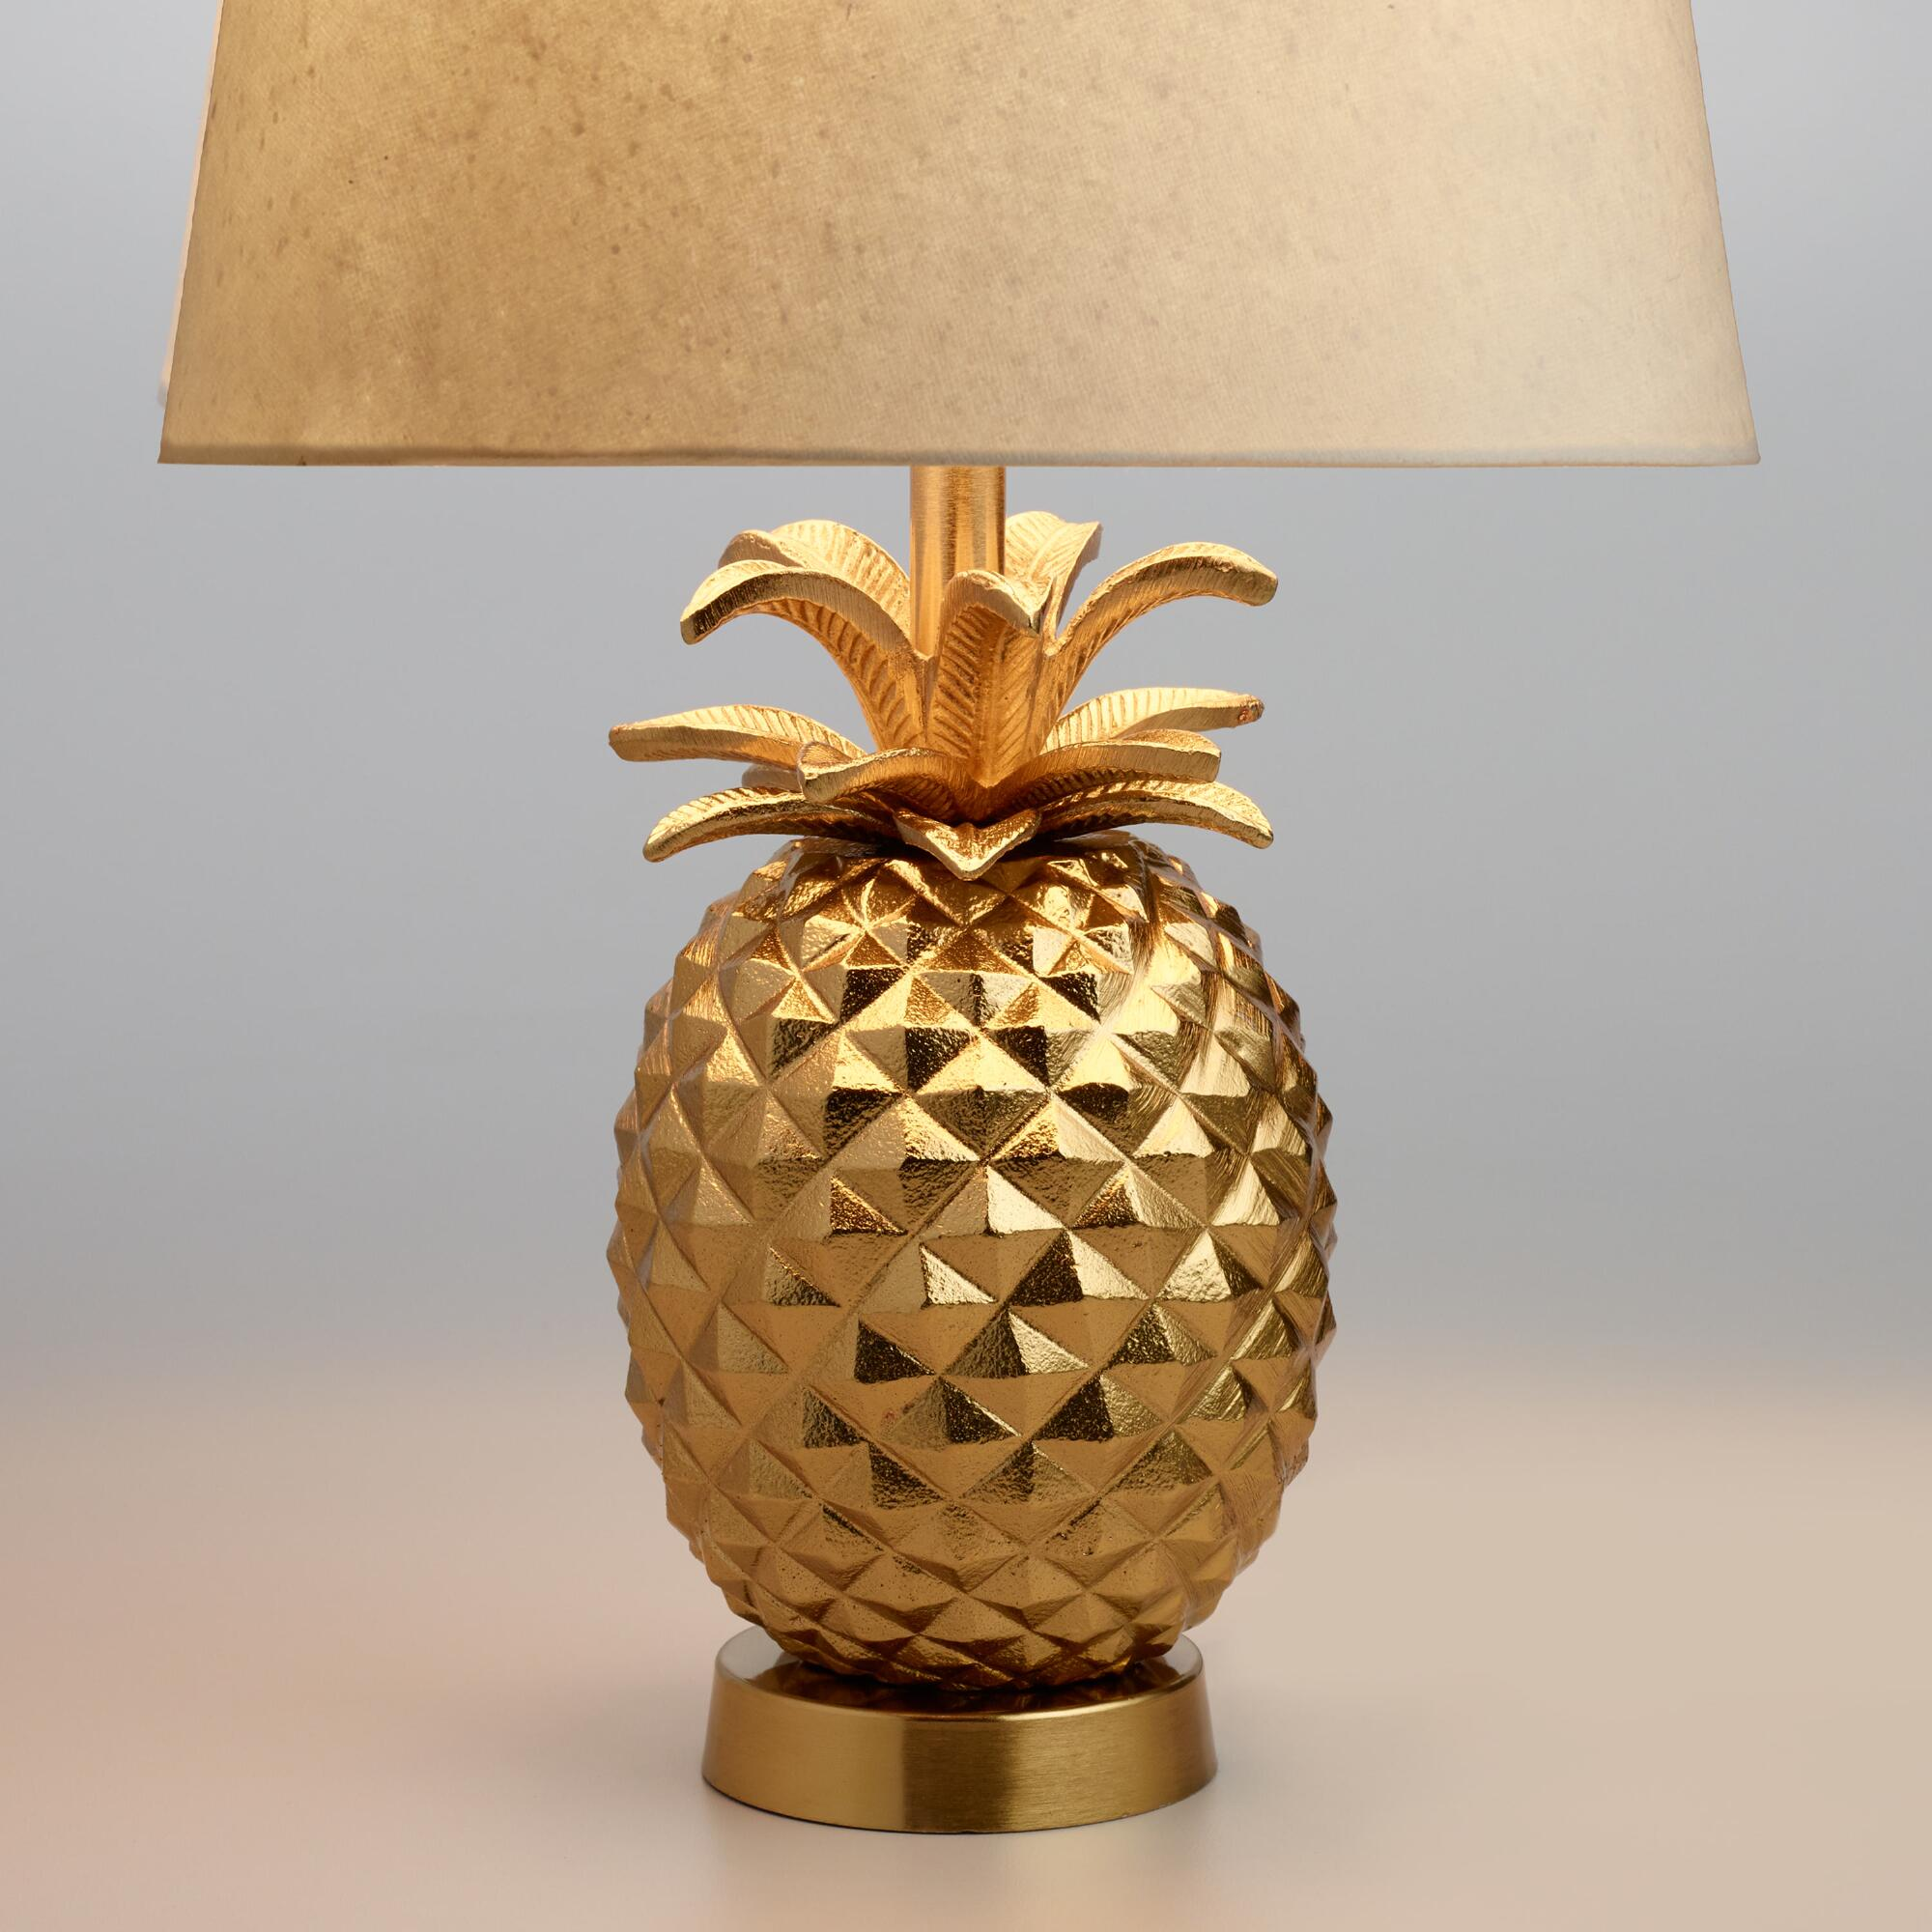 accent lighting unique table lamps world market iipsrv fcgi miniature brass pineapple lamp base outdoor grill rattan coffee with storage inch tablecloth buffet dining clearance